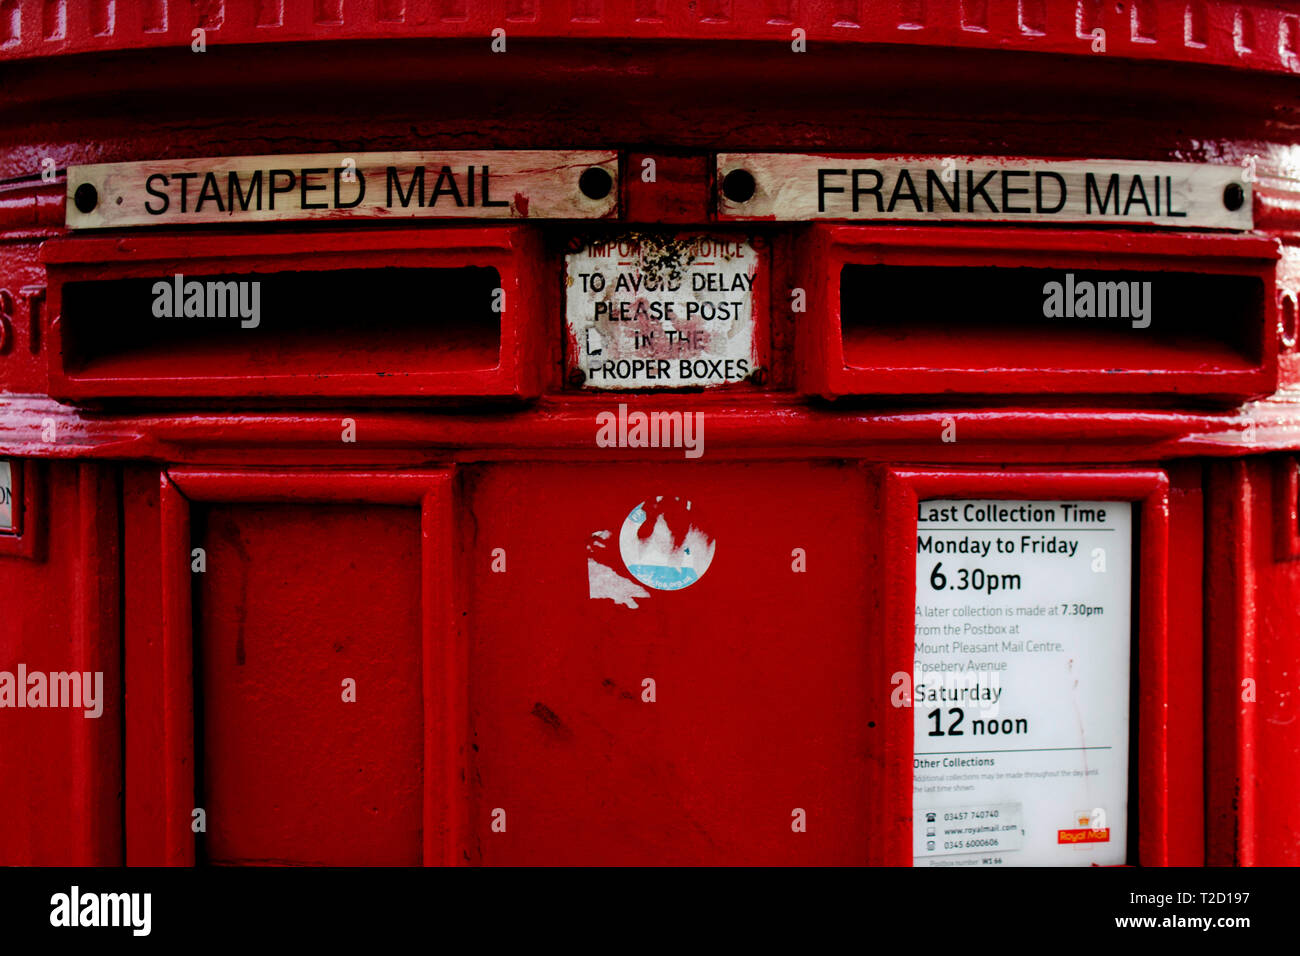 red post box for stamped mail and franked mail in London, Great Britain - Stock Image